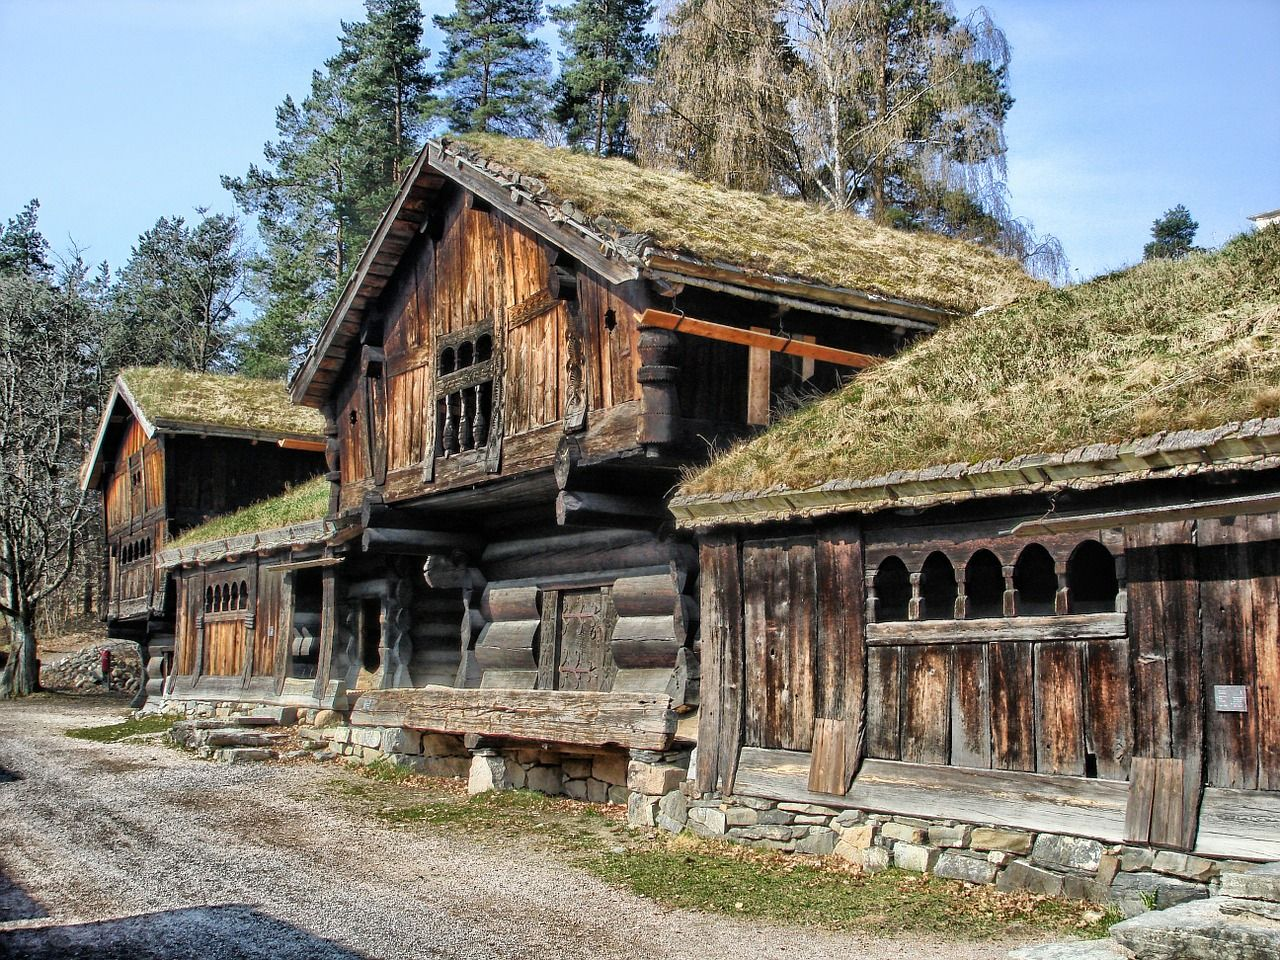 17 ways to produce income on a off grid homestead..classes/workshops and blacksmithing is what im hoping to do